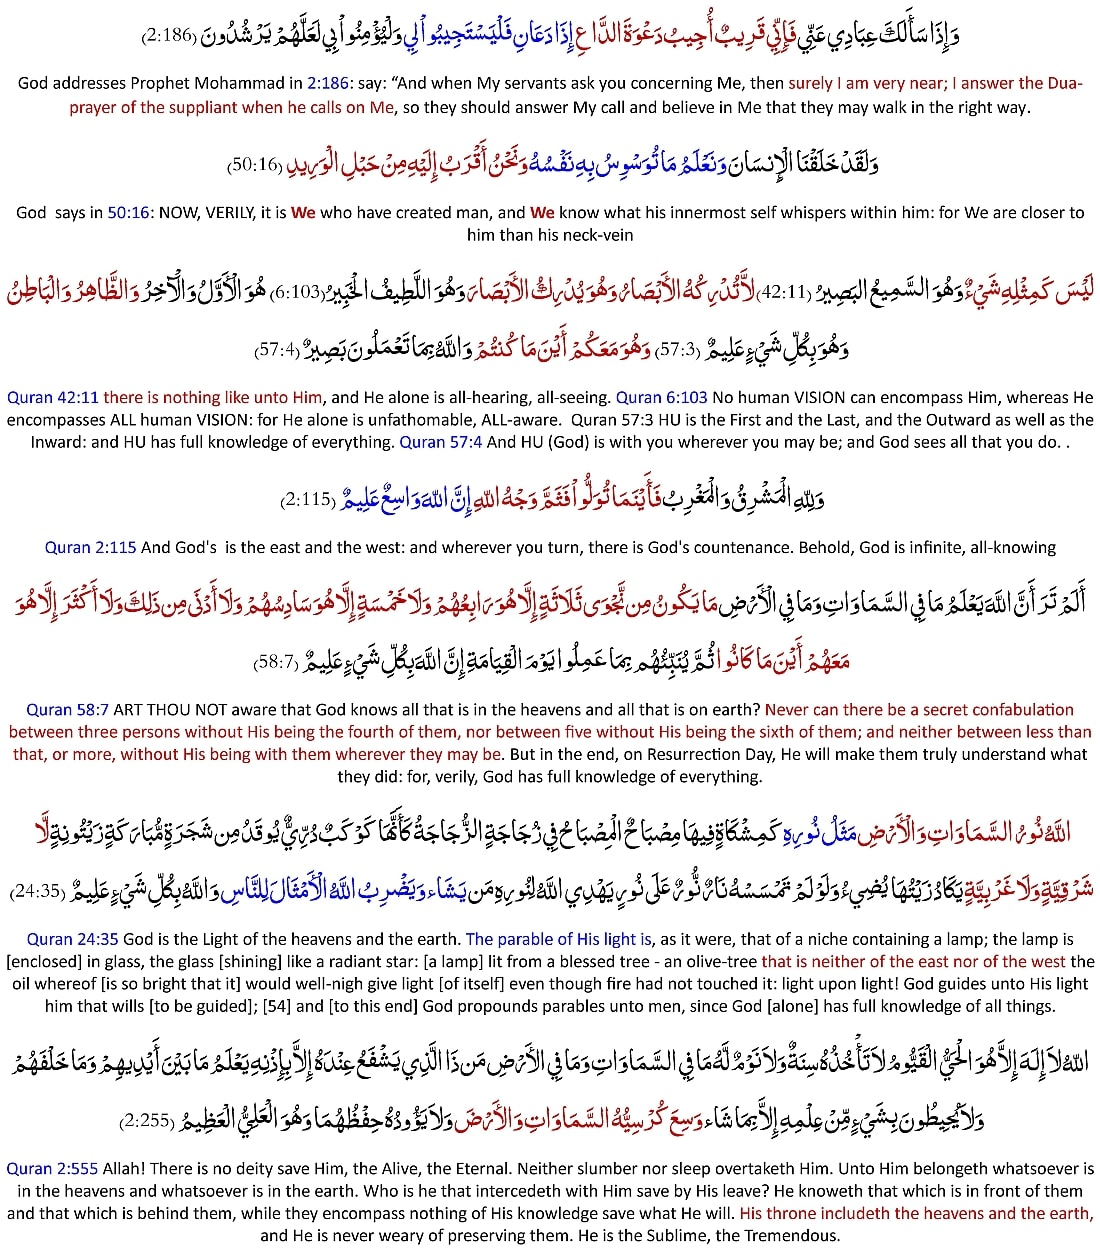 Allah says: His Quran is complete, fully detailed, and it